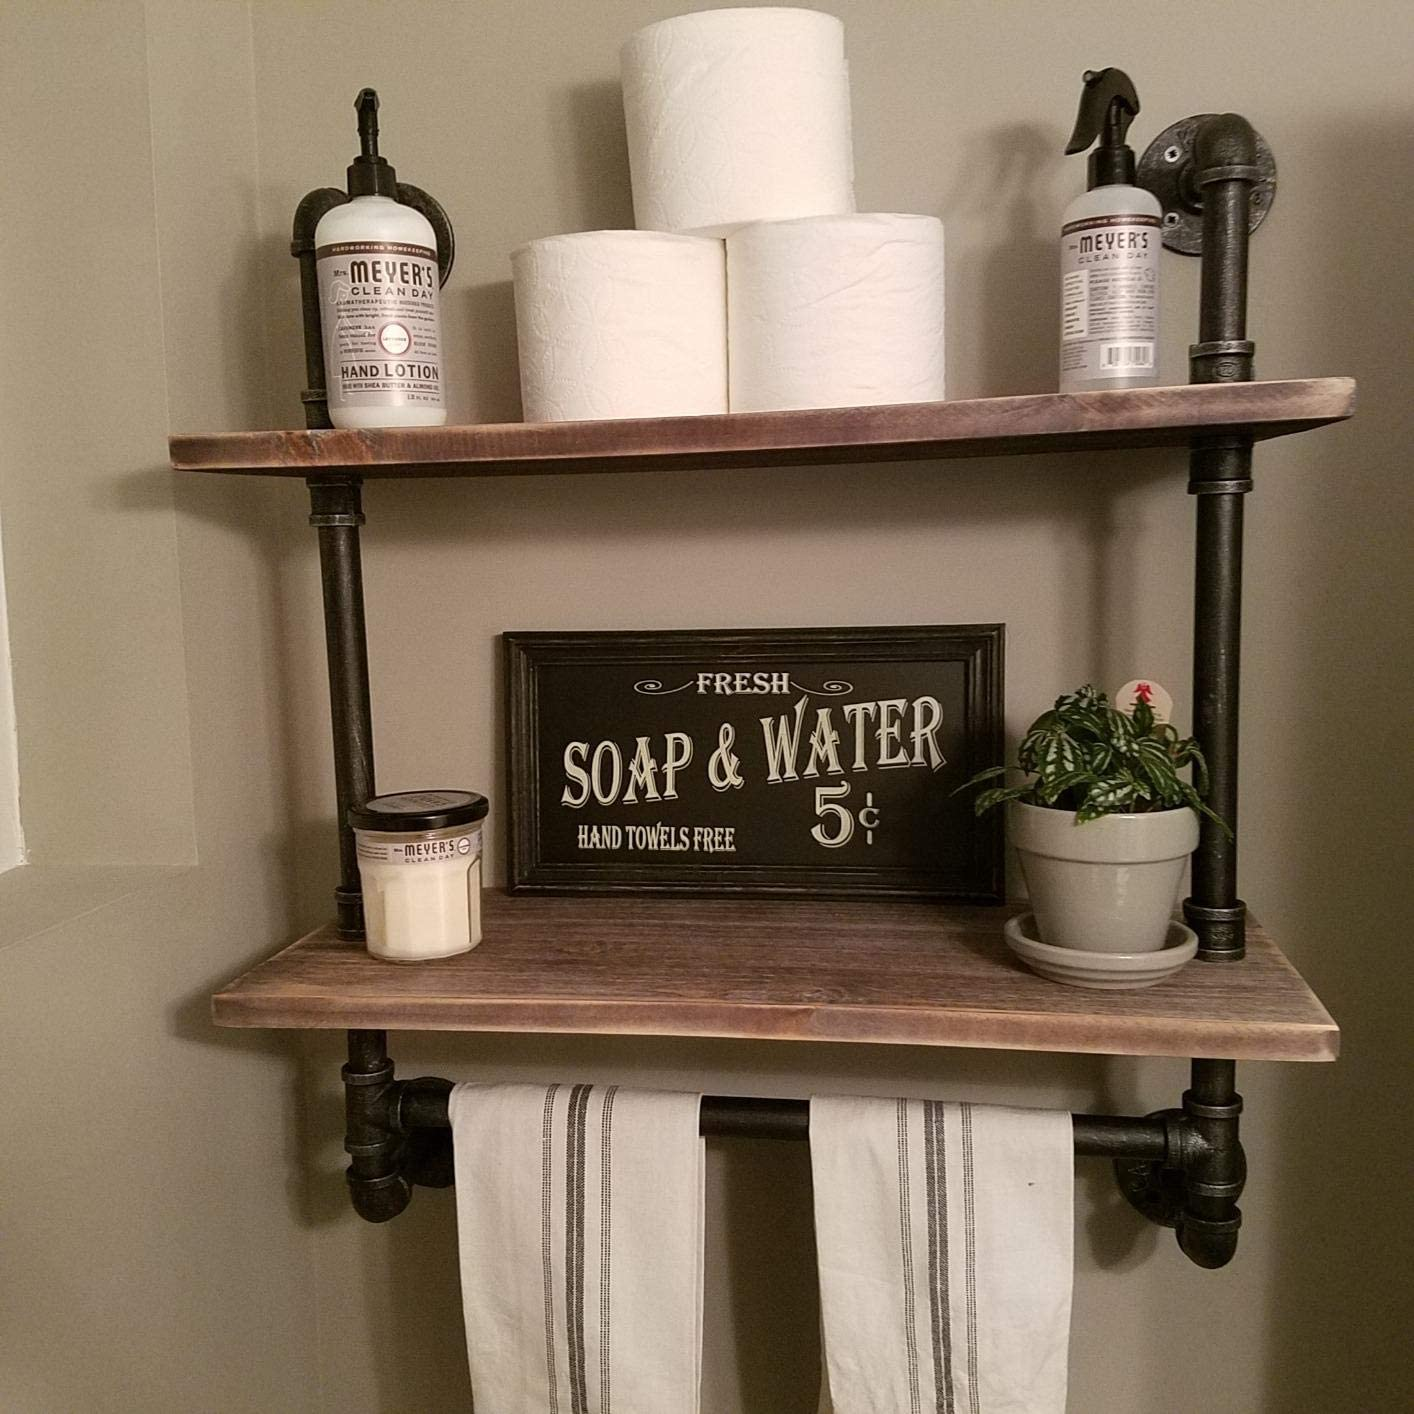 FODUE Industrial Ranking integrated 1st place Pipe Shelf Rustic Towel with 24